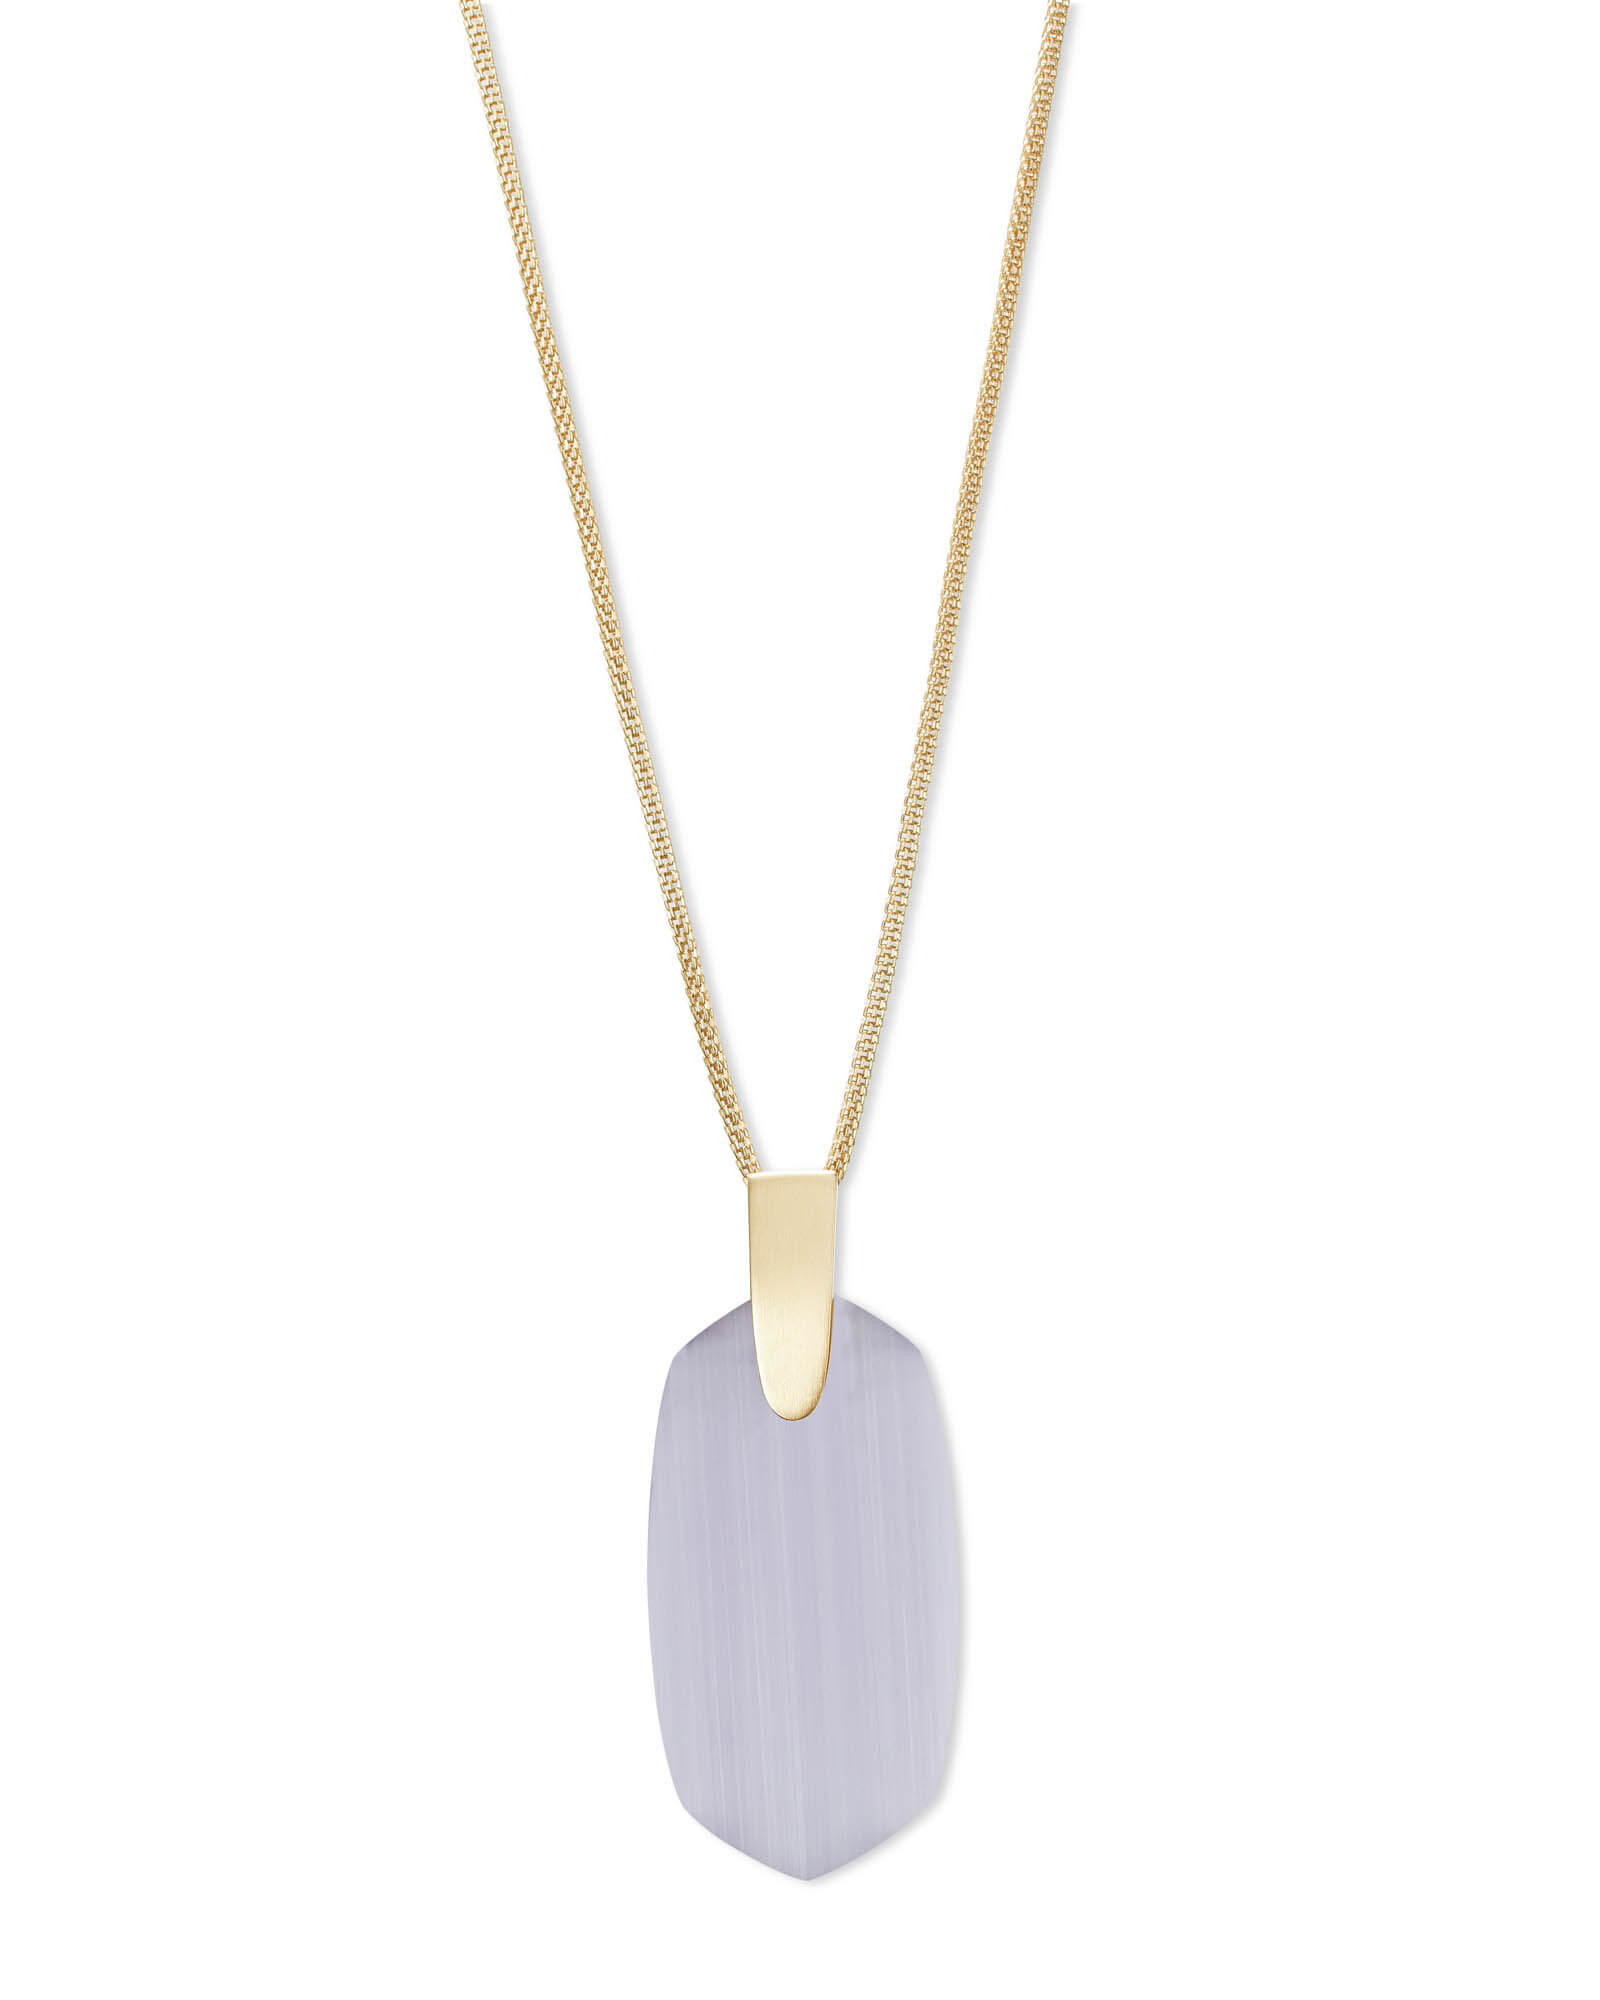 Inez Gold Long Pendant Necklace in Slate Cats Eye